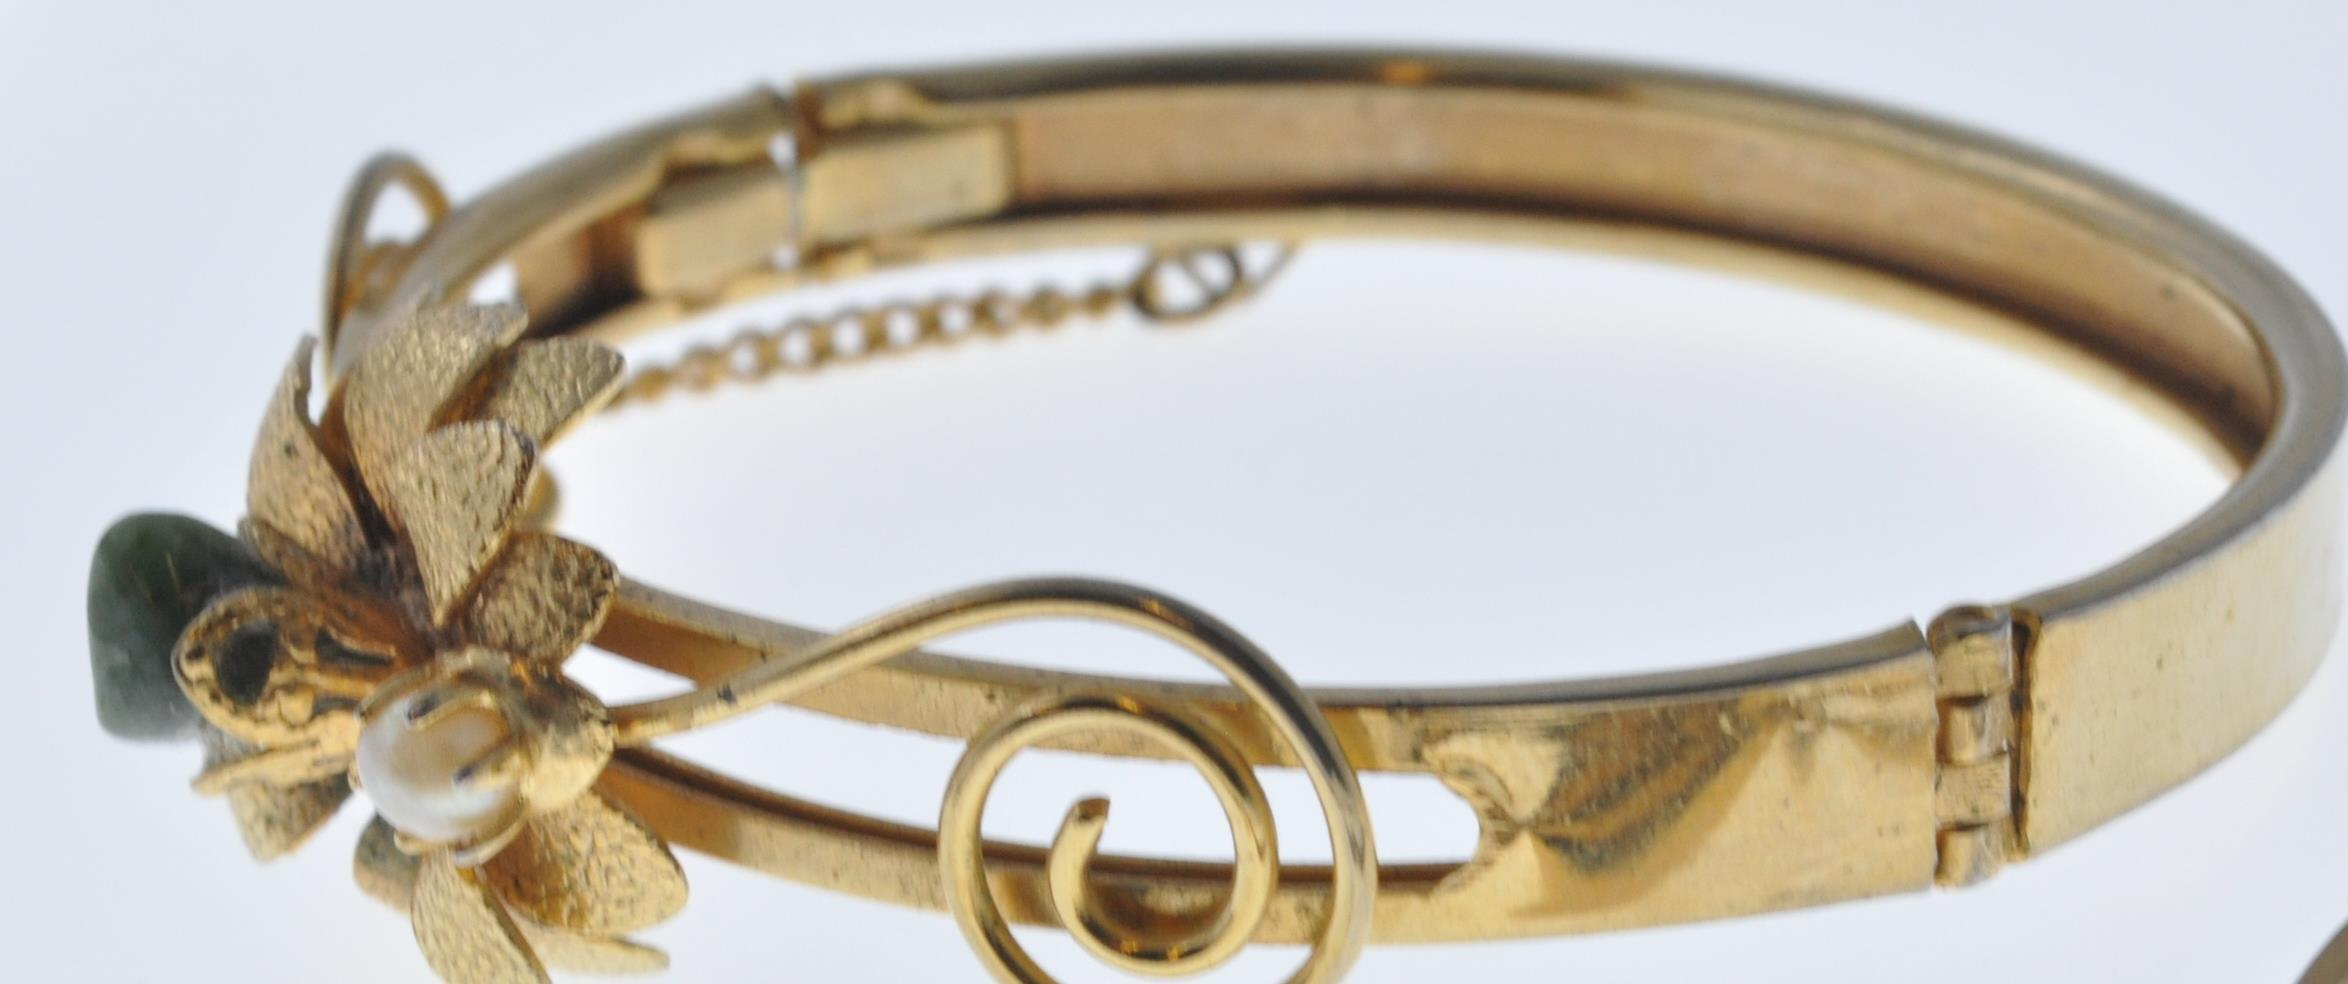 VINTAGE BANGLE AND NECKLACE - Image 2 of 9